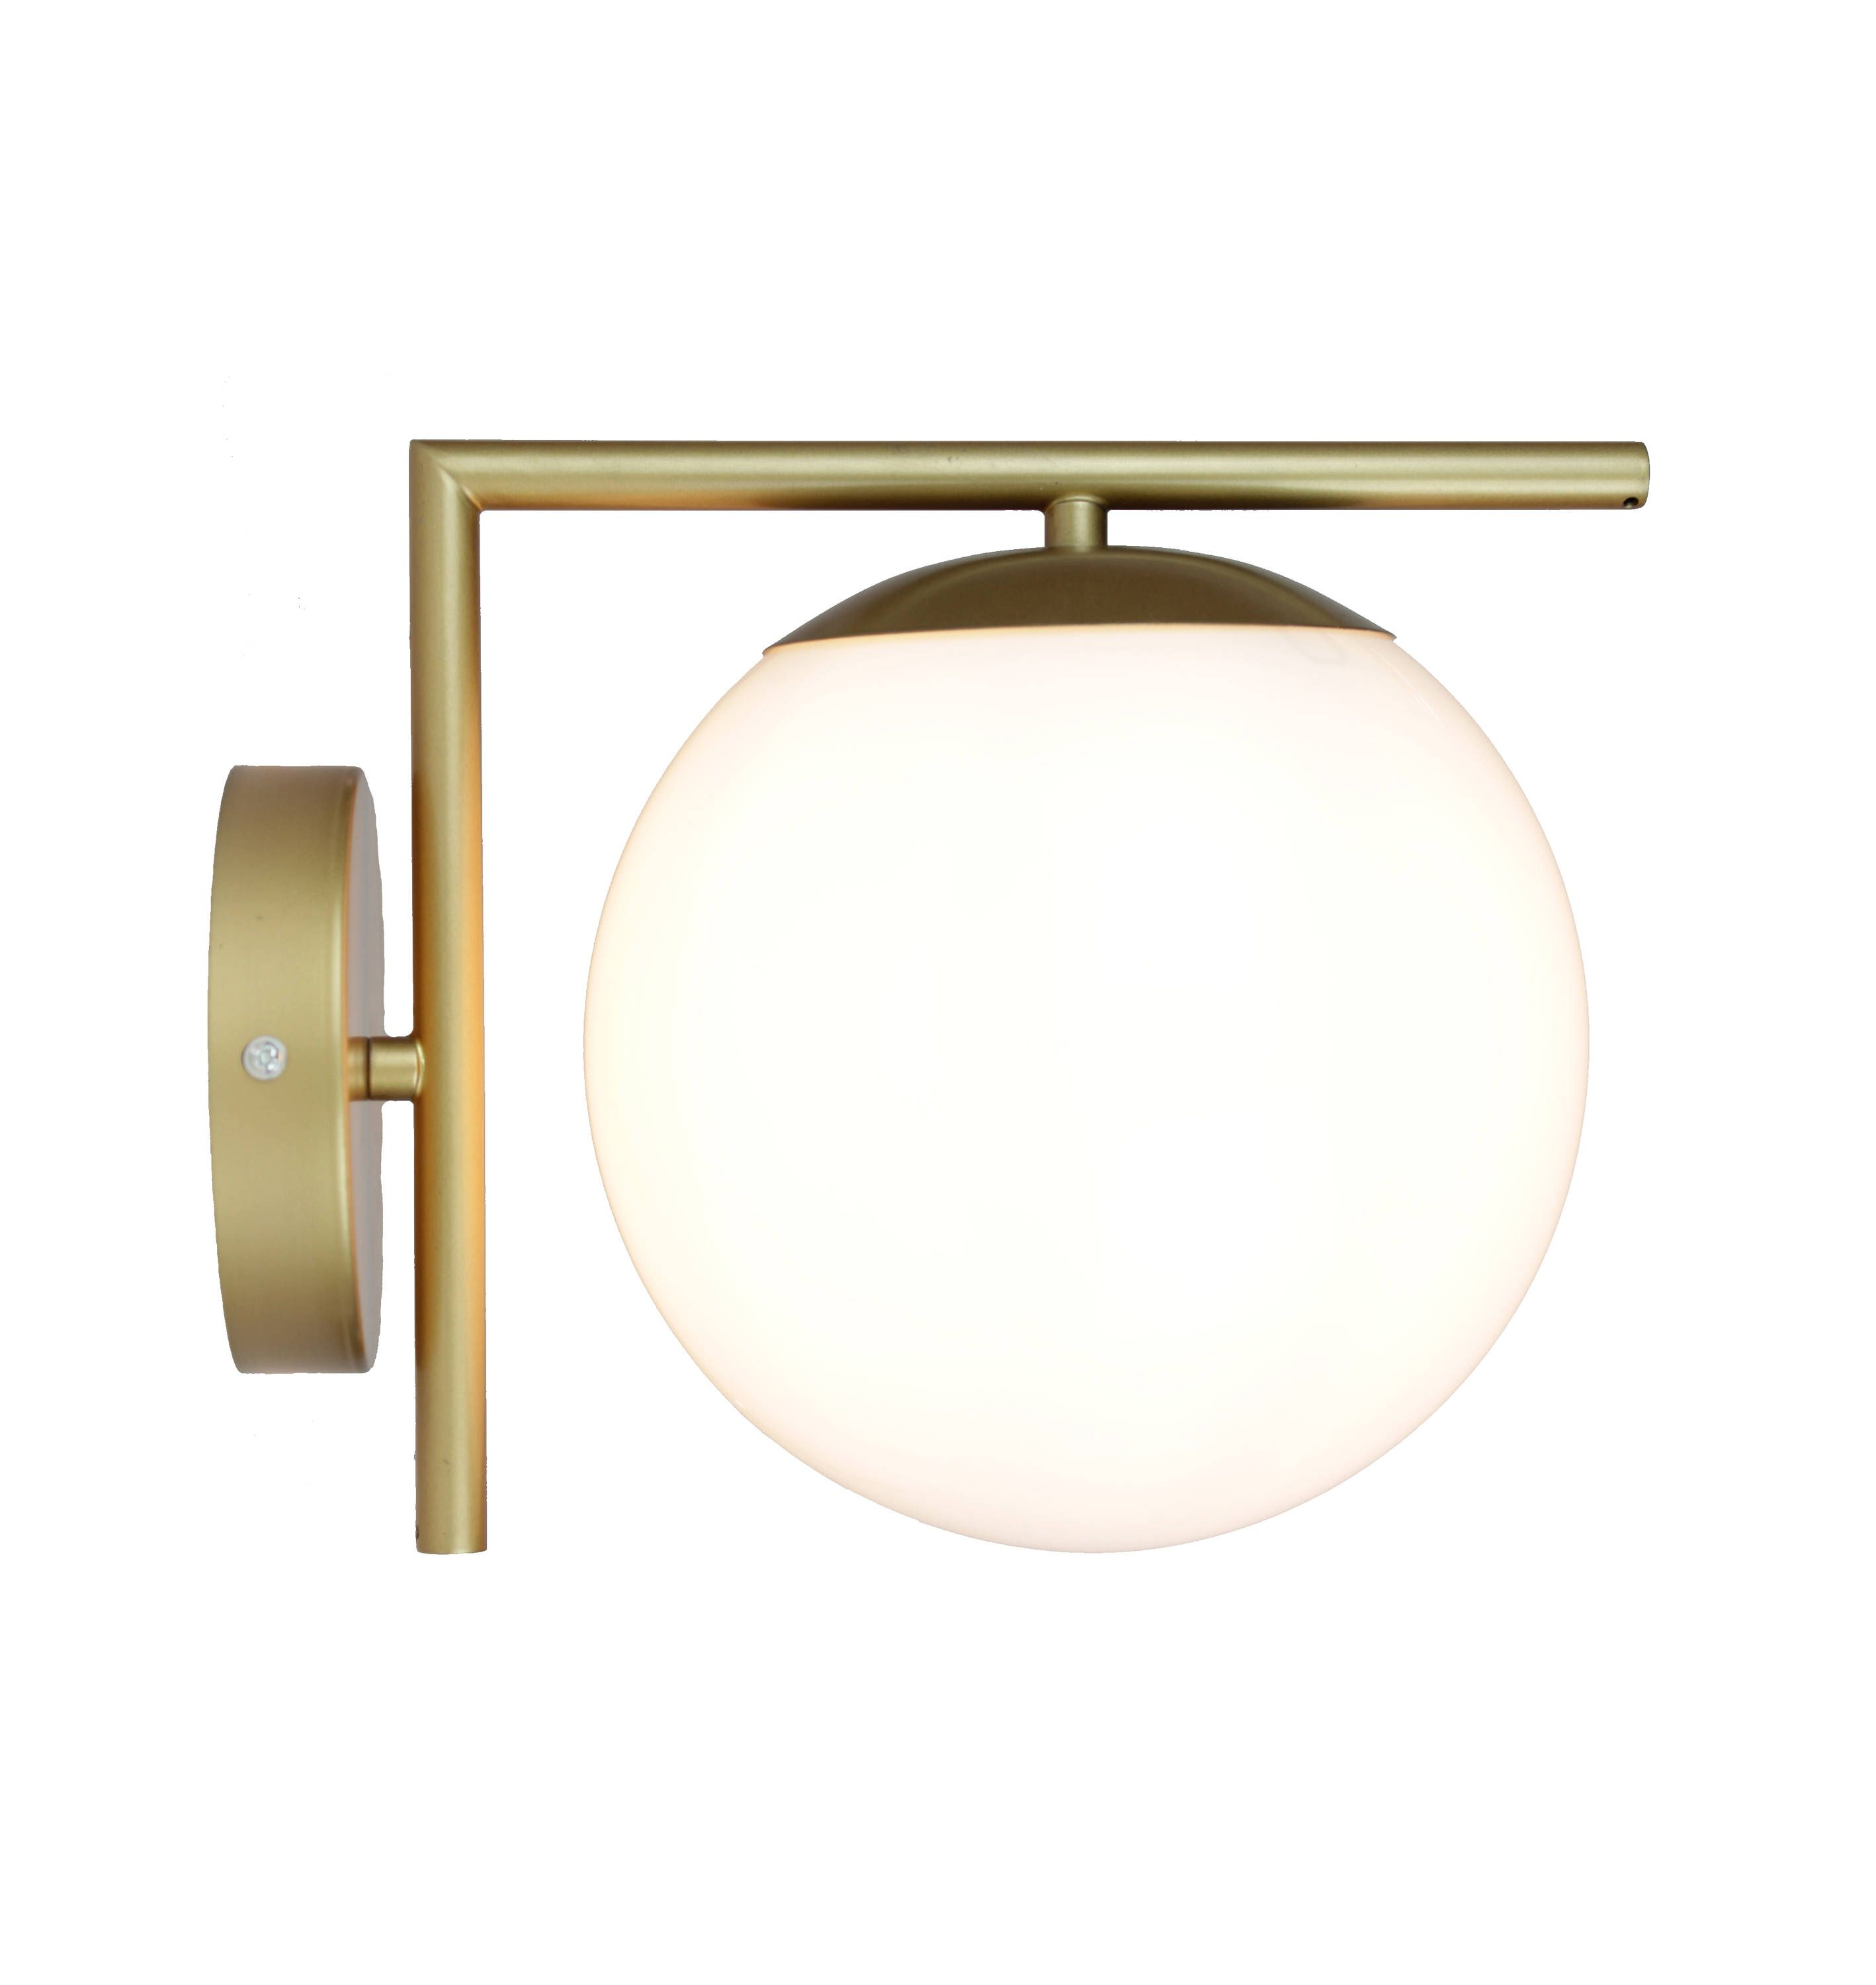 modern sconce light raw ul listed listing fullxfull industrial mid il bulb bathroom gold vanity wall century stjc brass